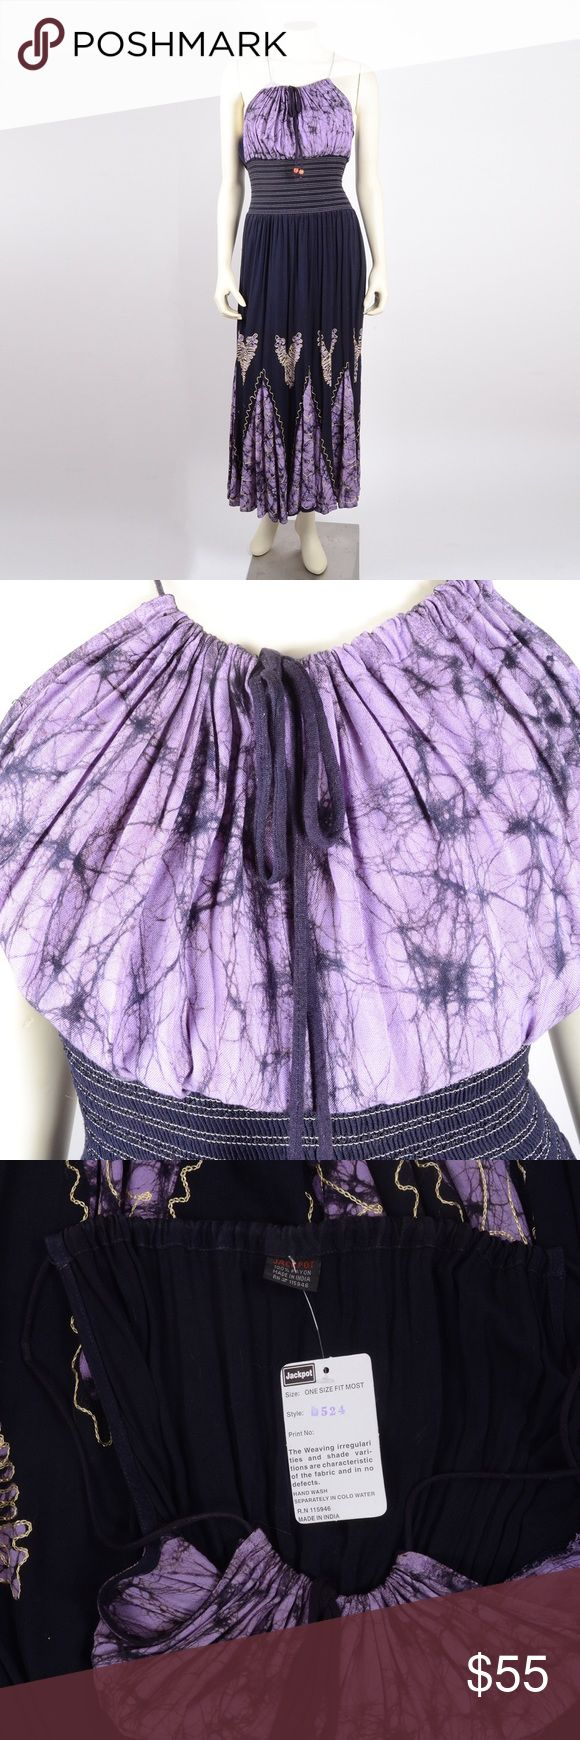 """Purple boho maxi dress Hey festival girls this is the perfect summer dress. Adjustable bodice in tie dye purple features sexy spaghetti straps. 57"""" to floor at longest in back, 53"""" at shortest in front. Dresses Maxi"""